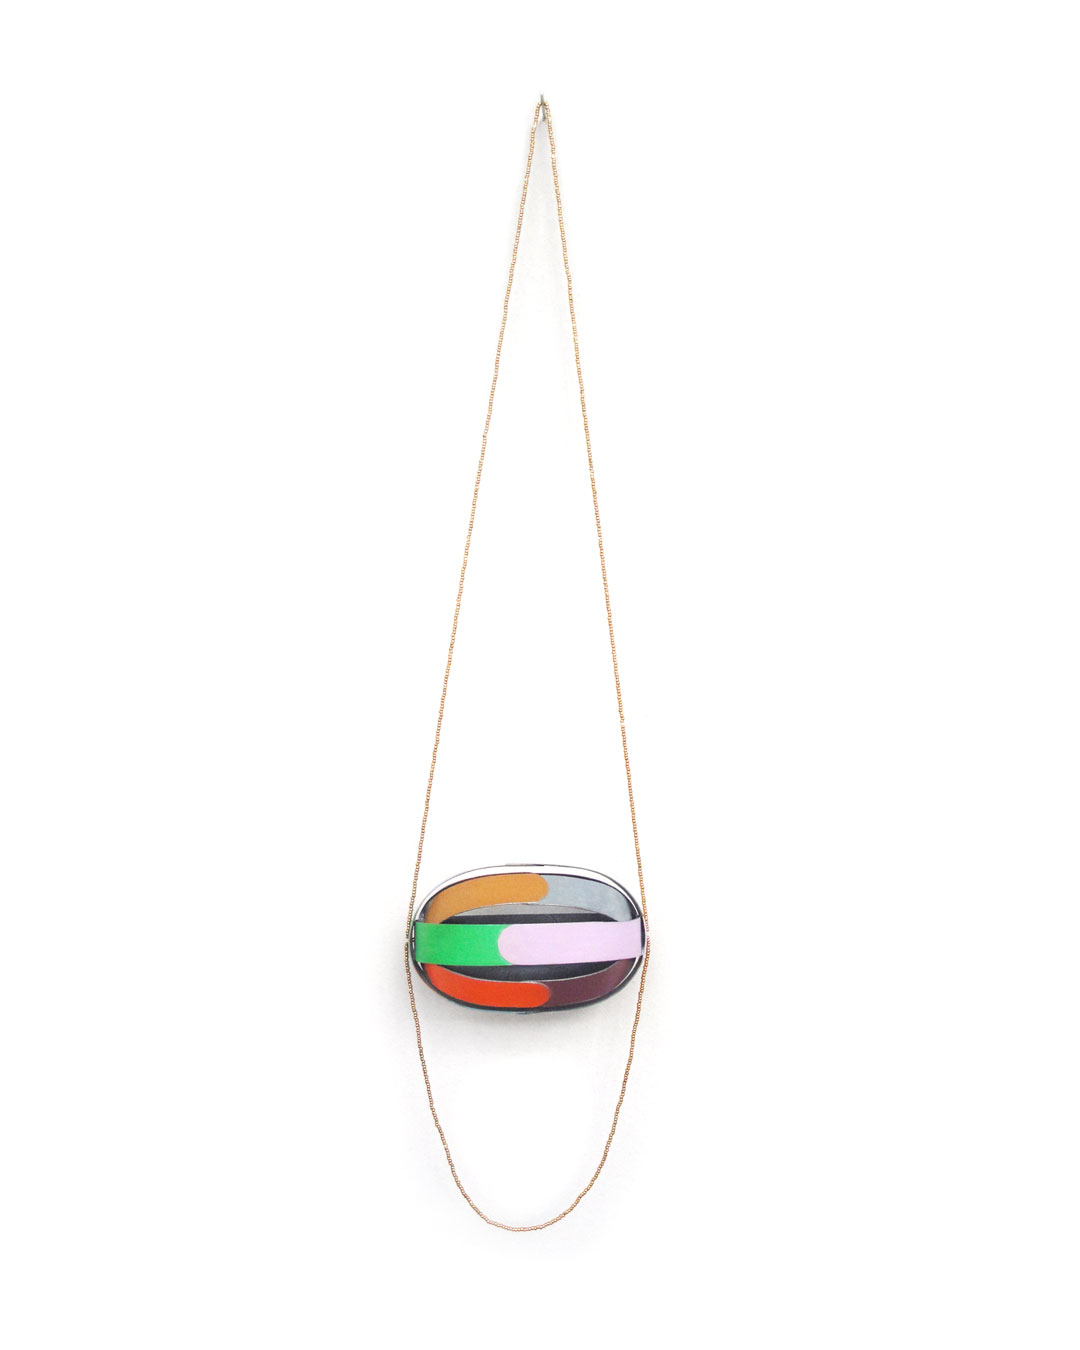 Lucy Sarneel, Beady Greed, 2014, necklace; zinc, gold-plated beads, acrylic paint, varnish, 640 x 85 x 50 mm, €1400